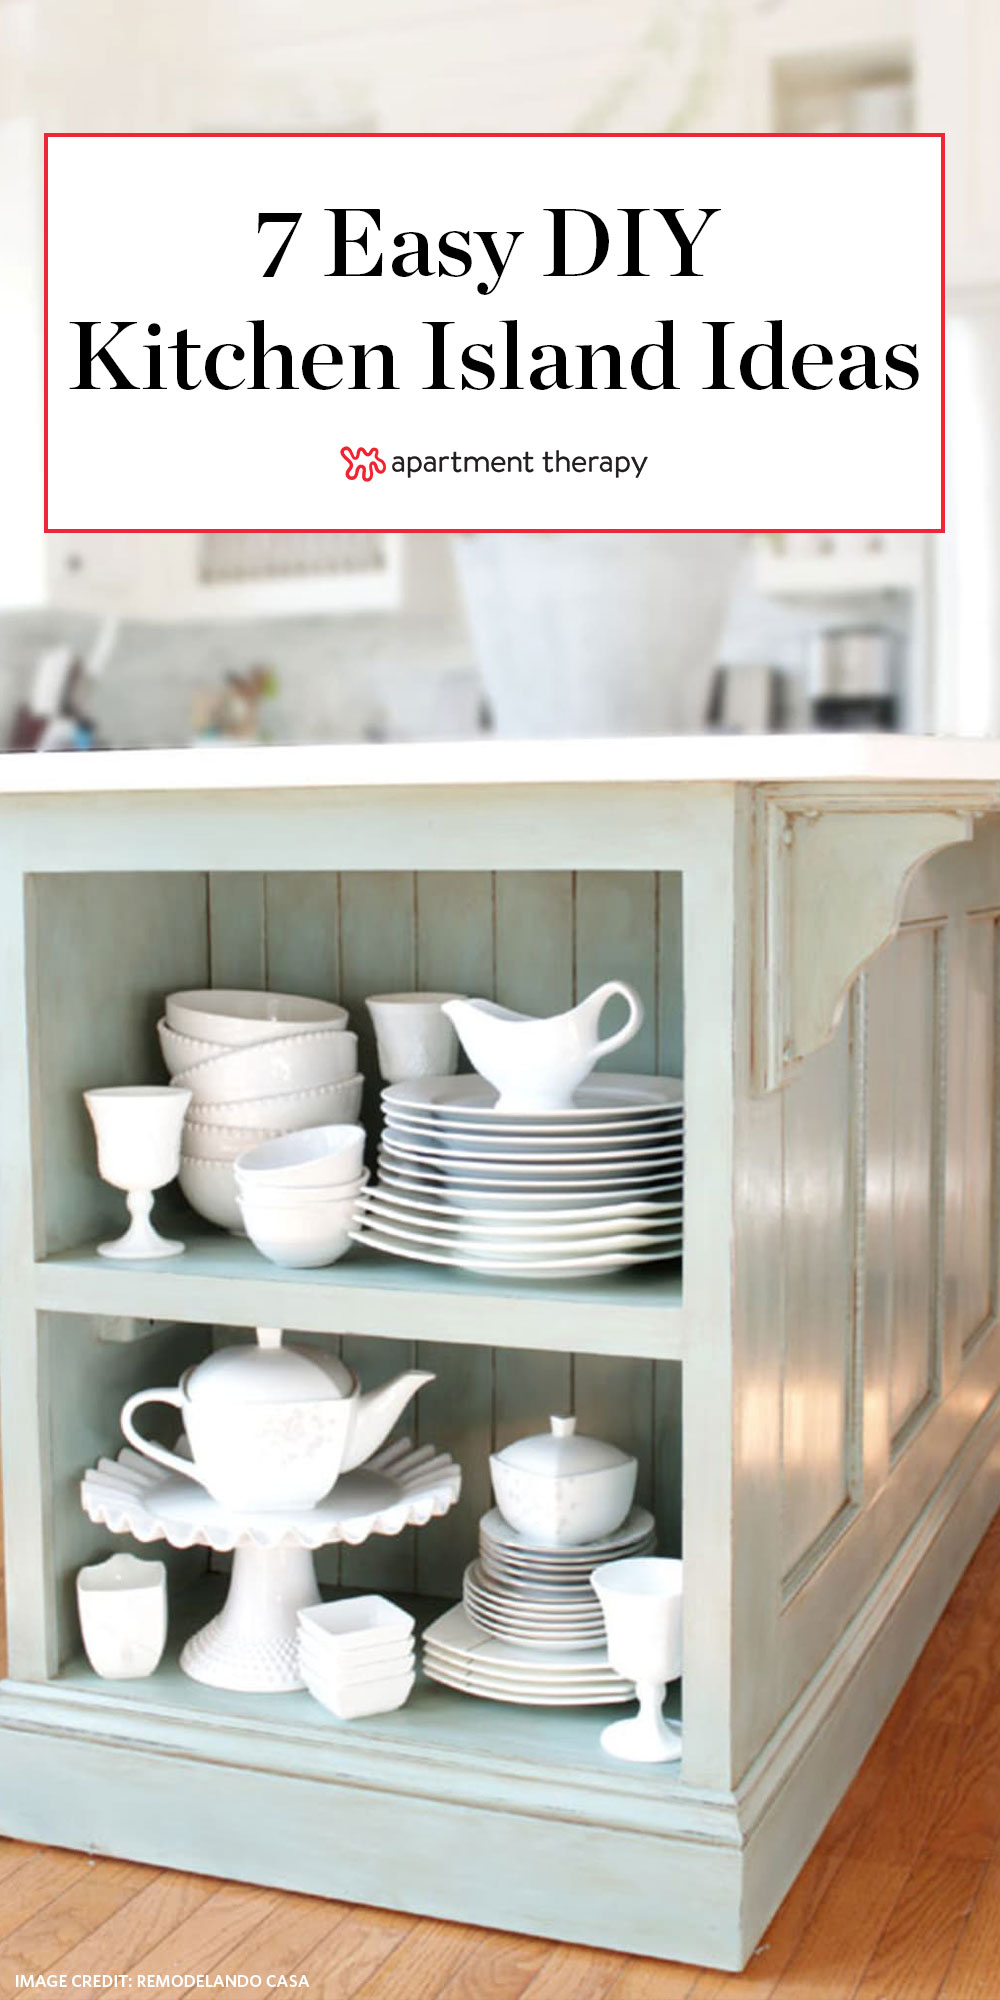 7 Easy Diy Kitchen Island Ideas How To Build A Kitchen Island Apartment Therapy